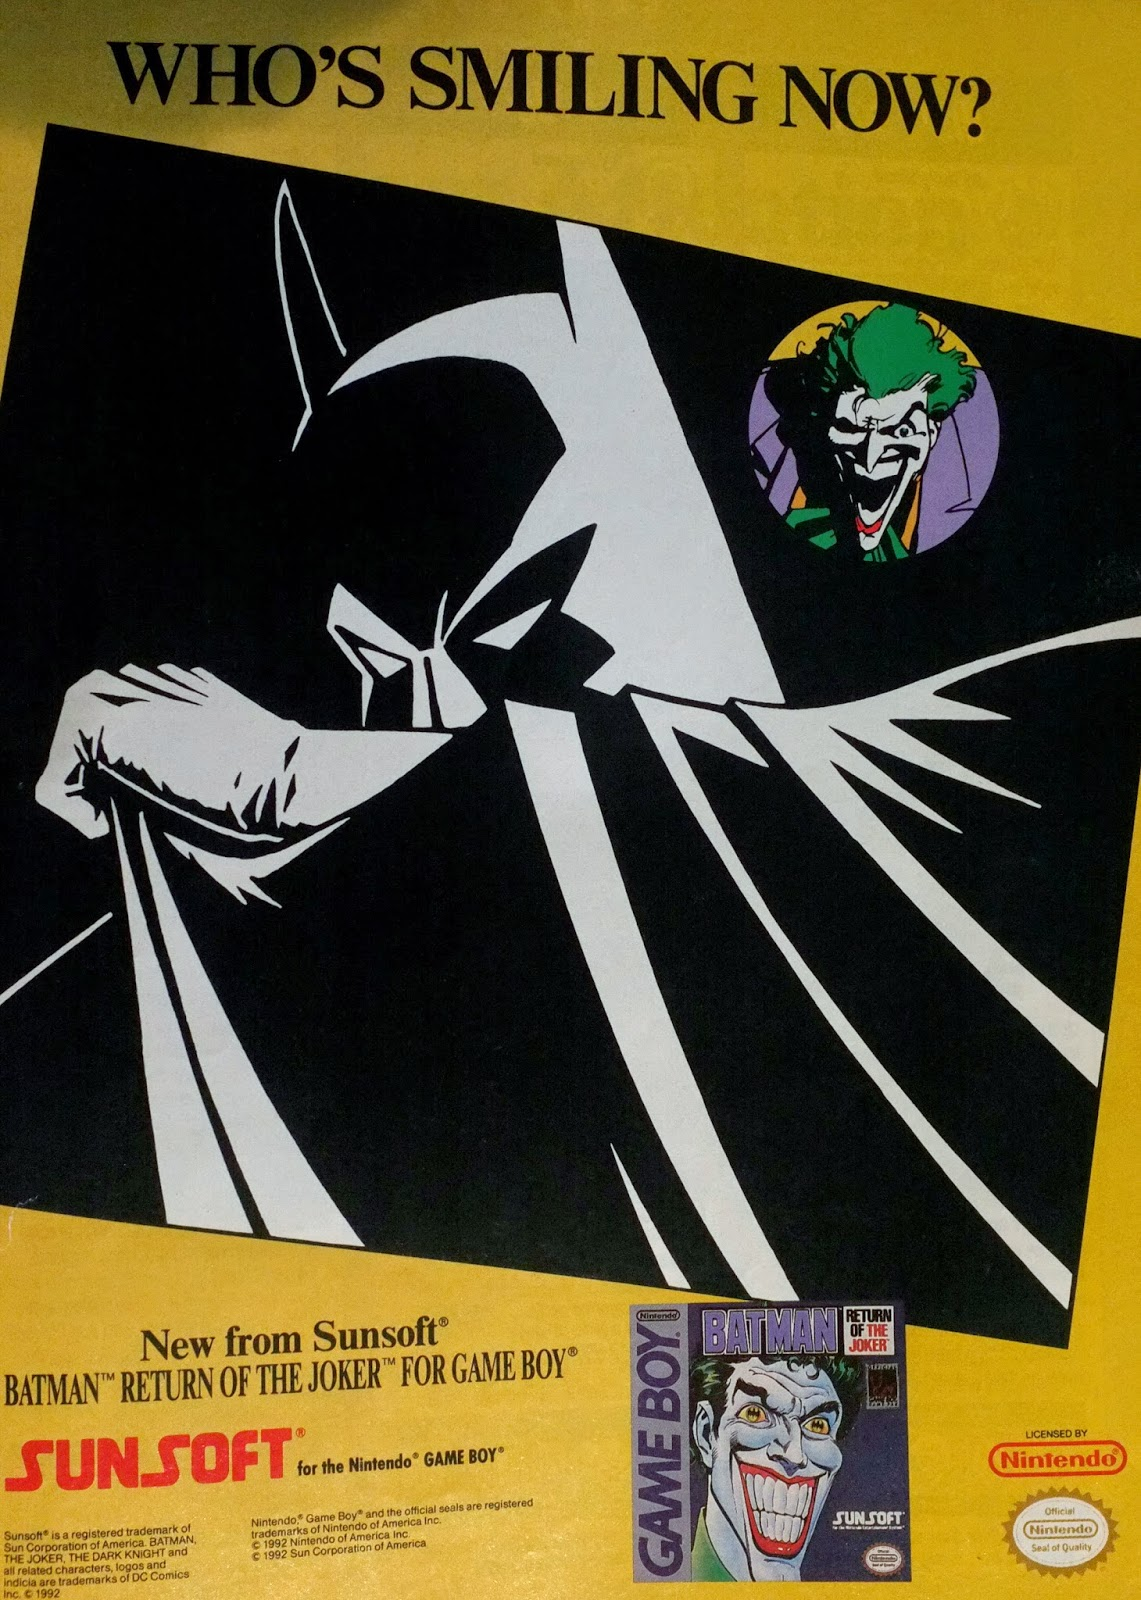 Batman. Return of the Joker for Game Boy advertisement